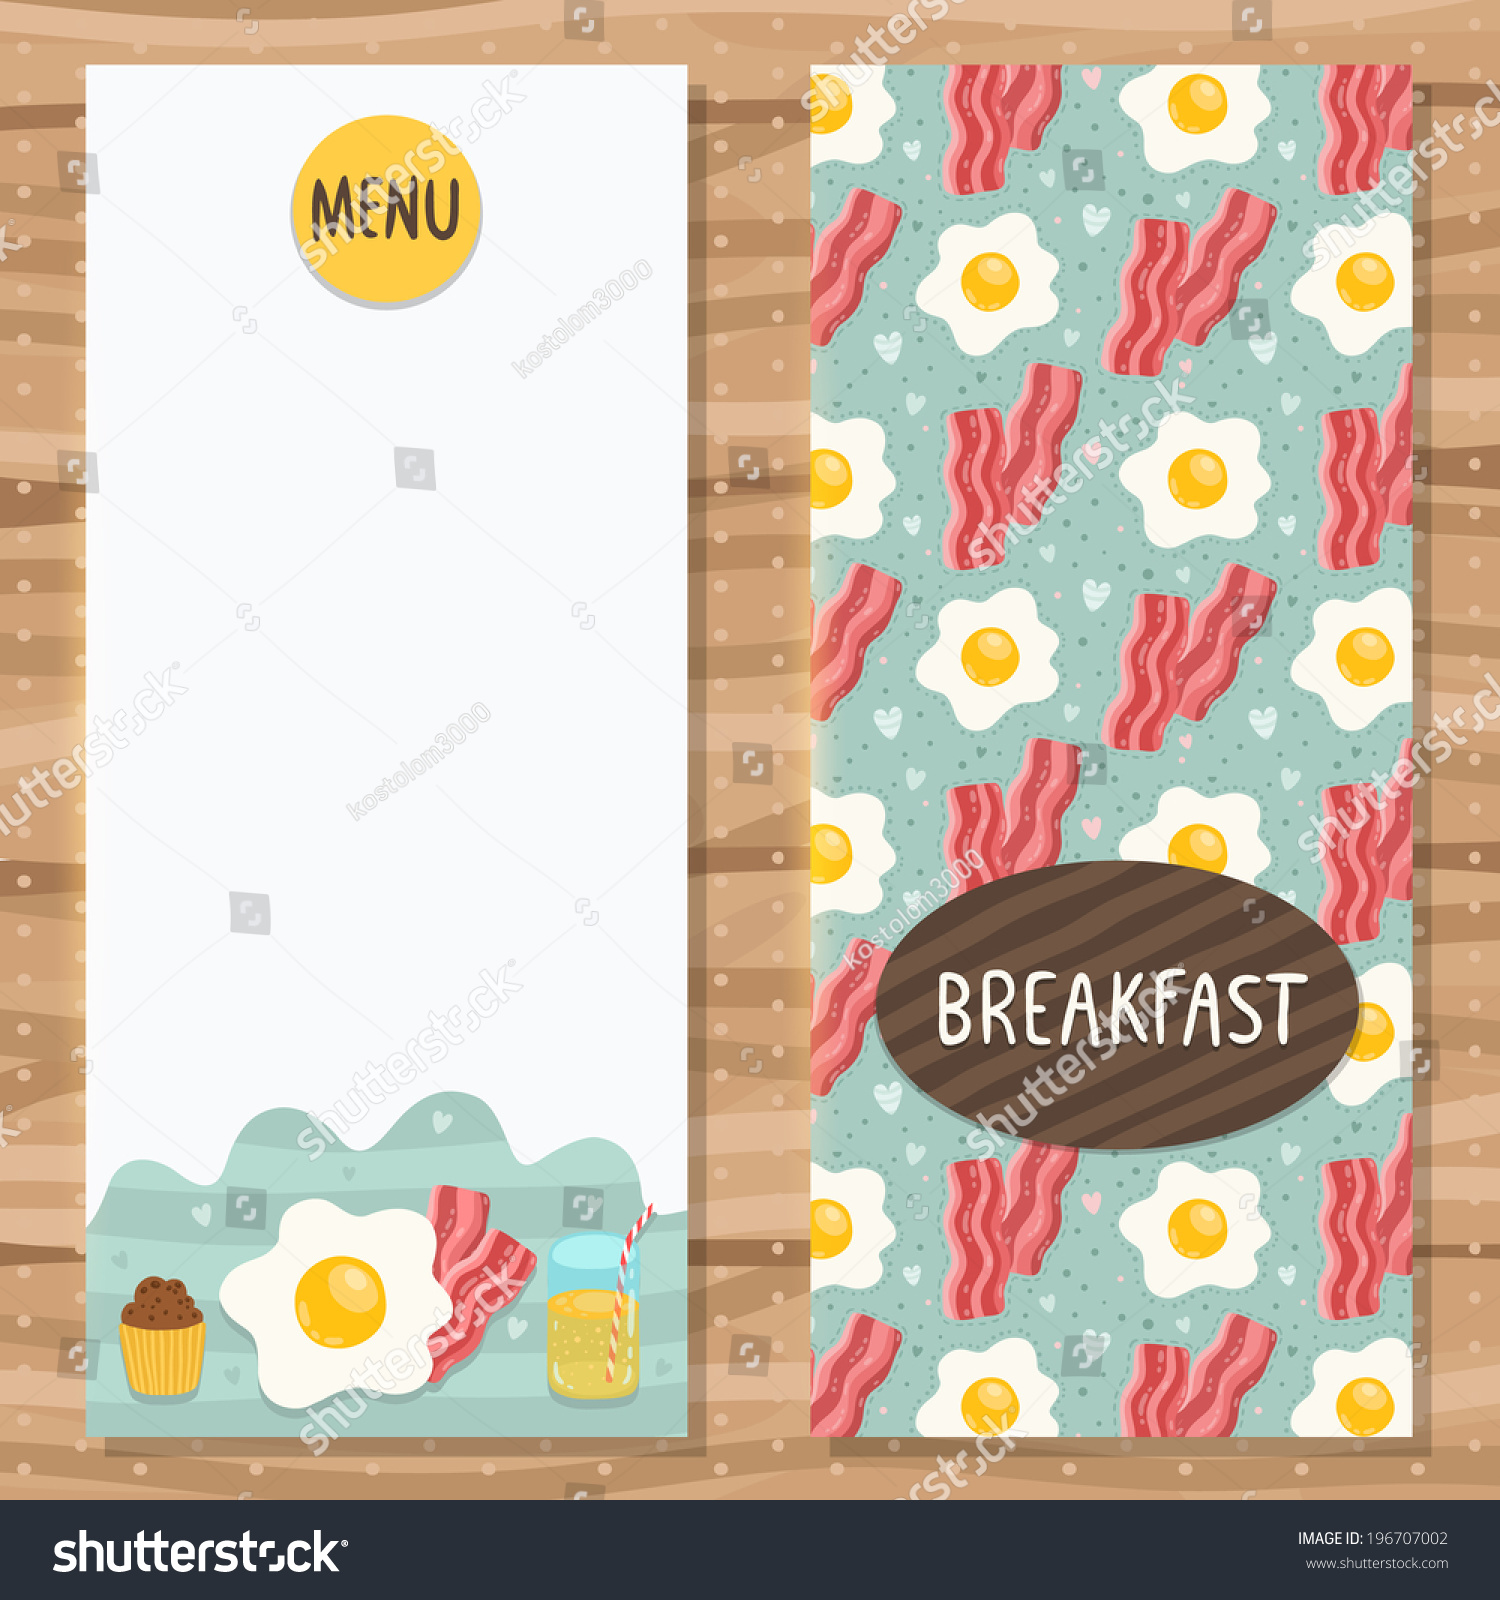 brochure template breakfast menu egg bacon stock vector  brochure template for breakfast menu egg bacon cupcake and juice cute flyer